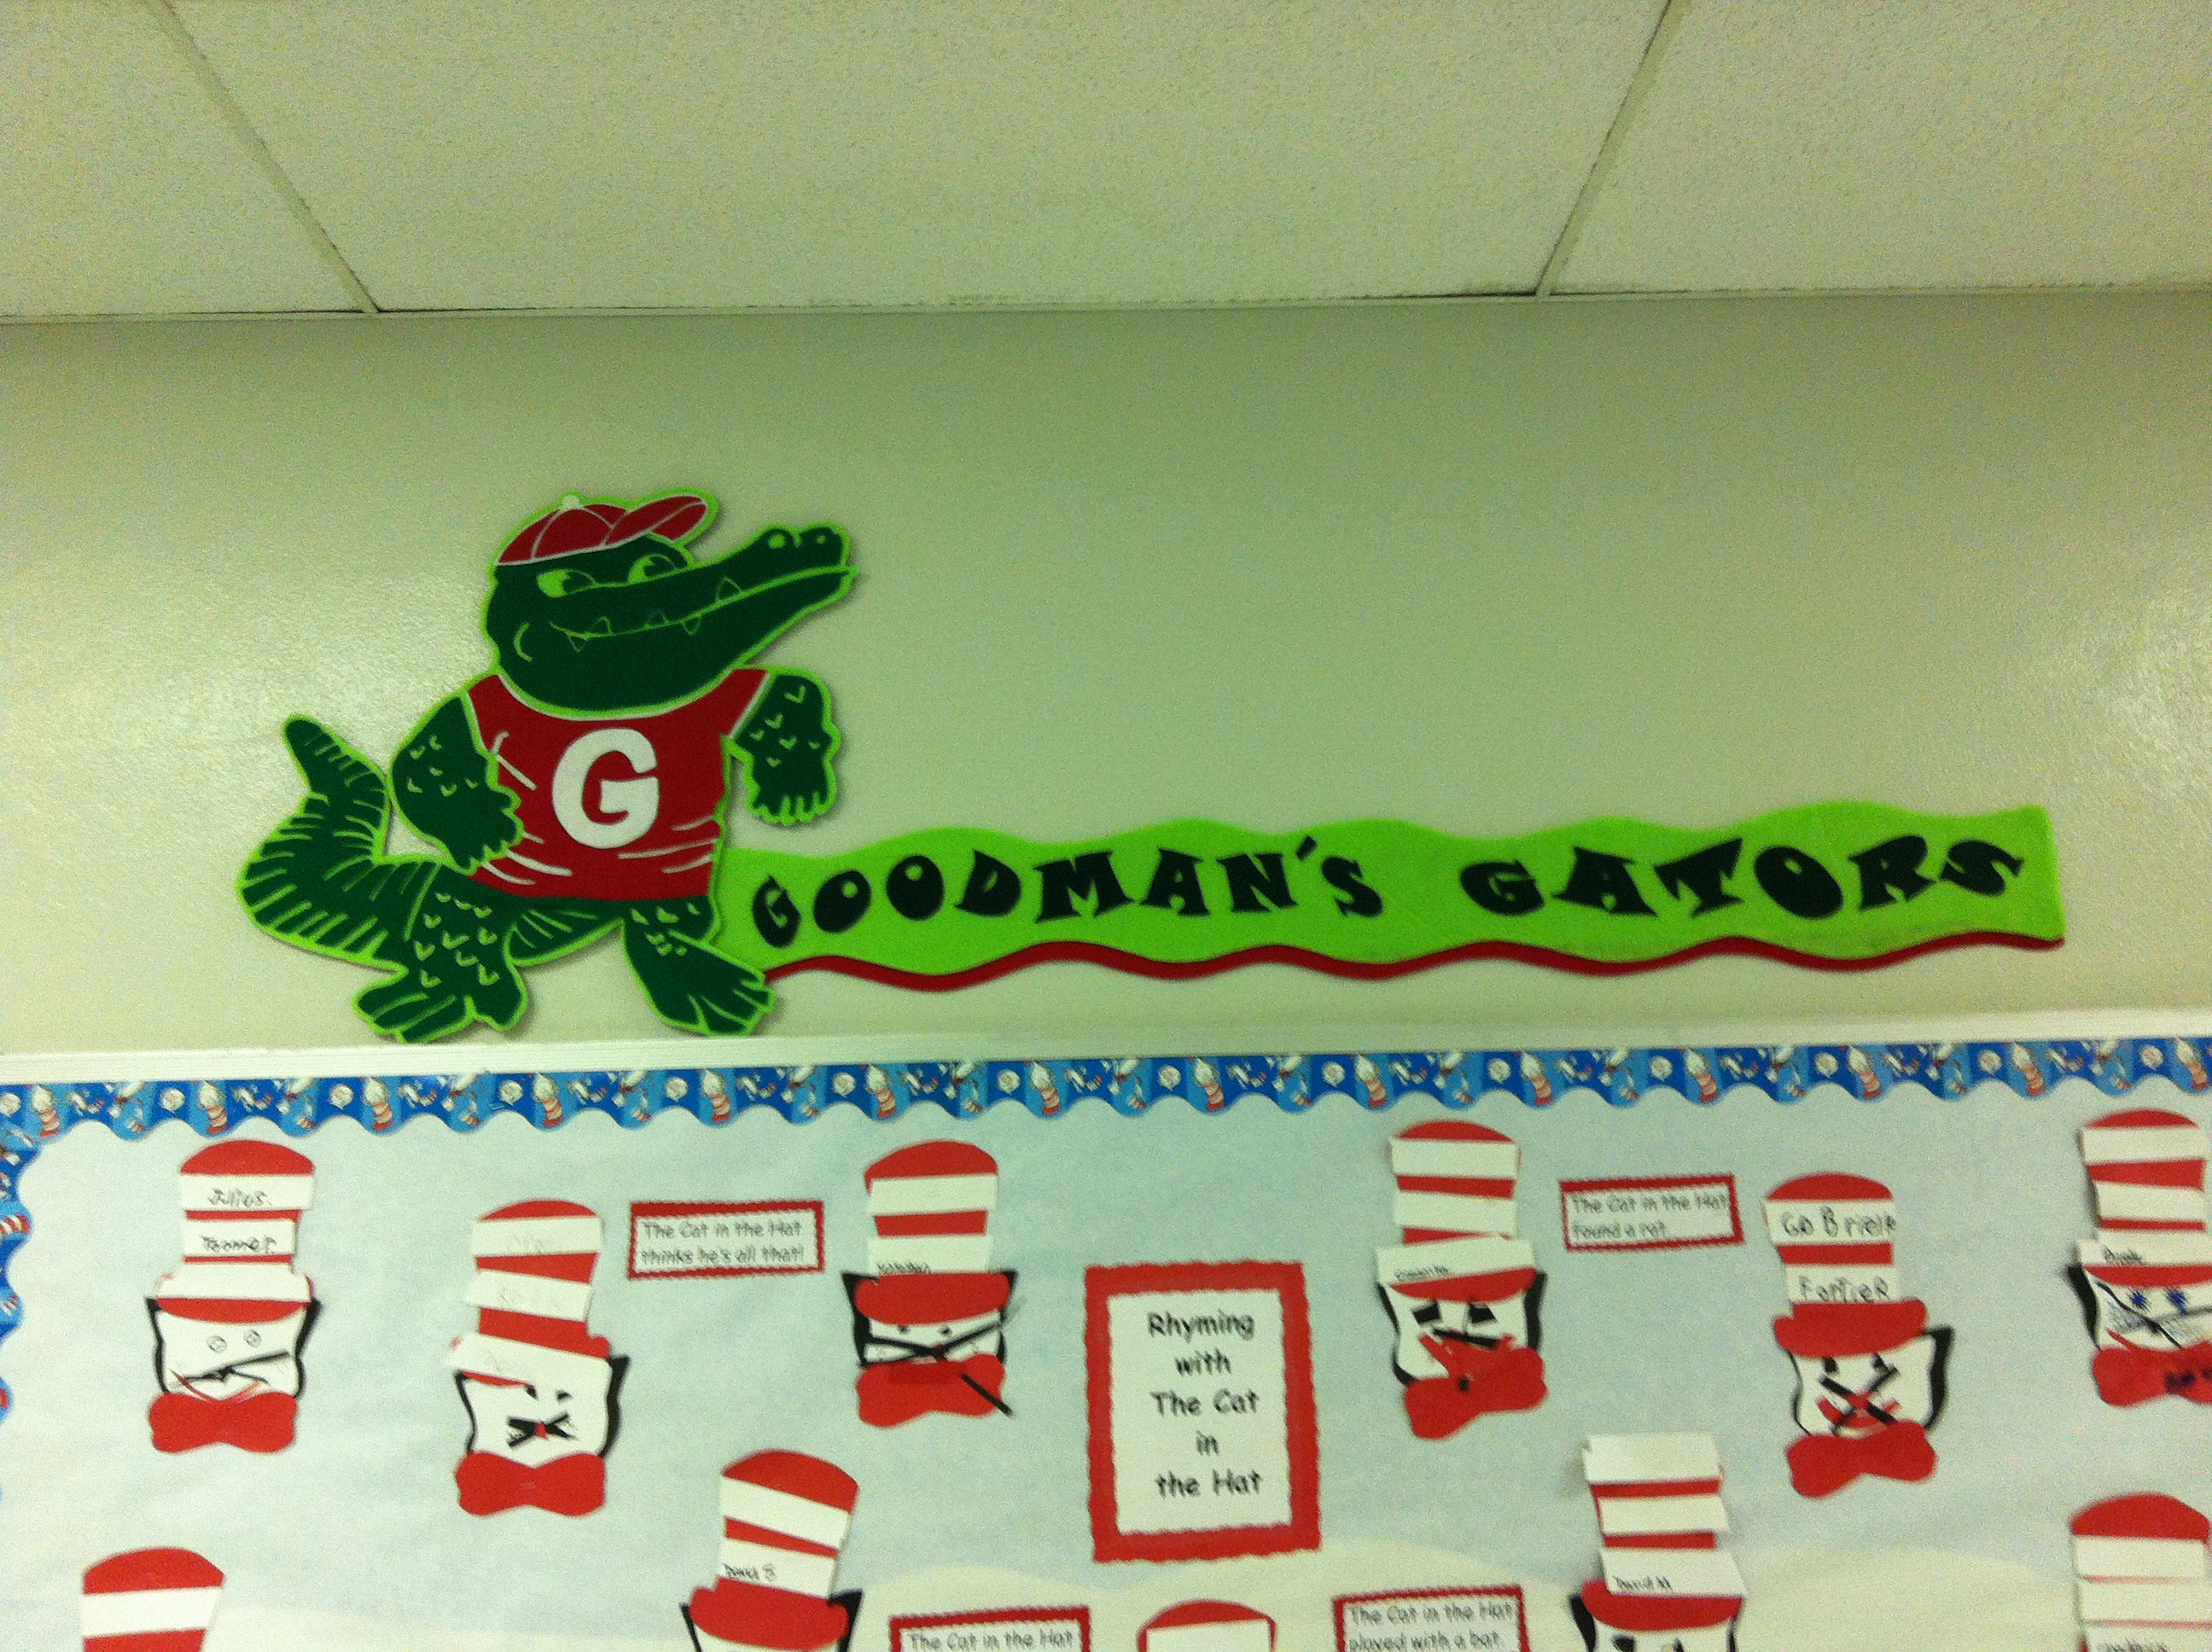 Goodman's Gators